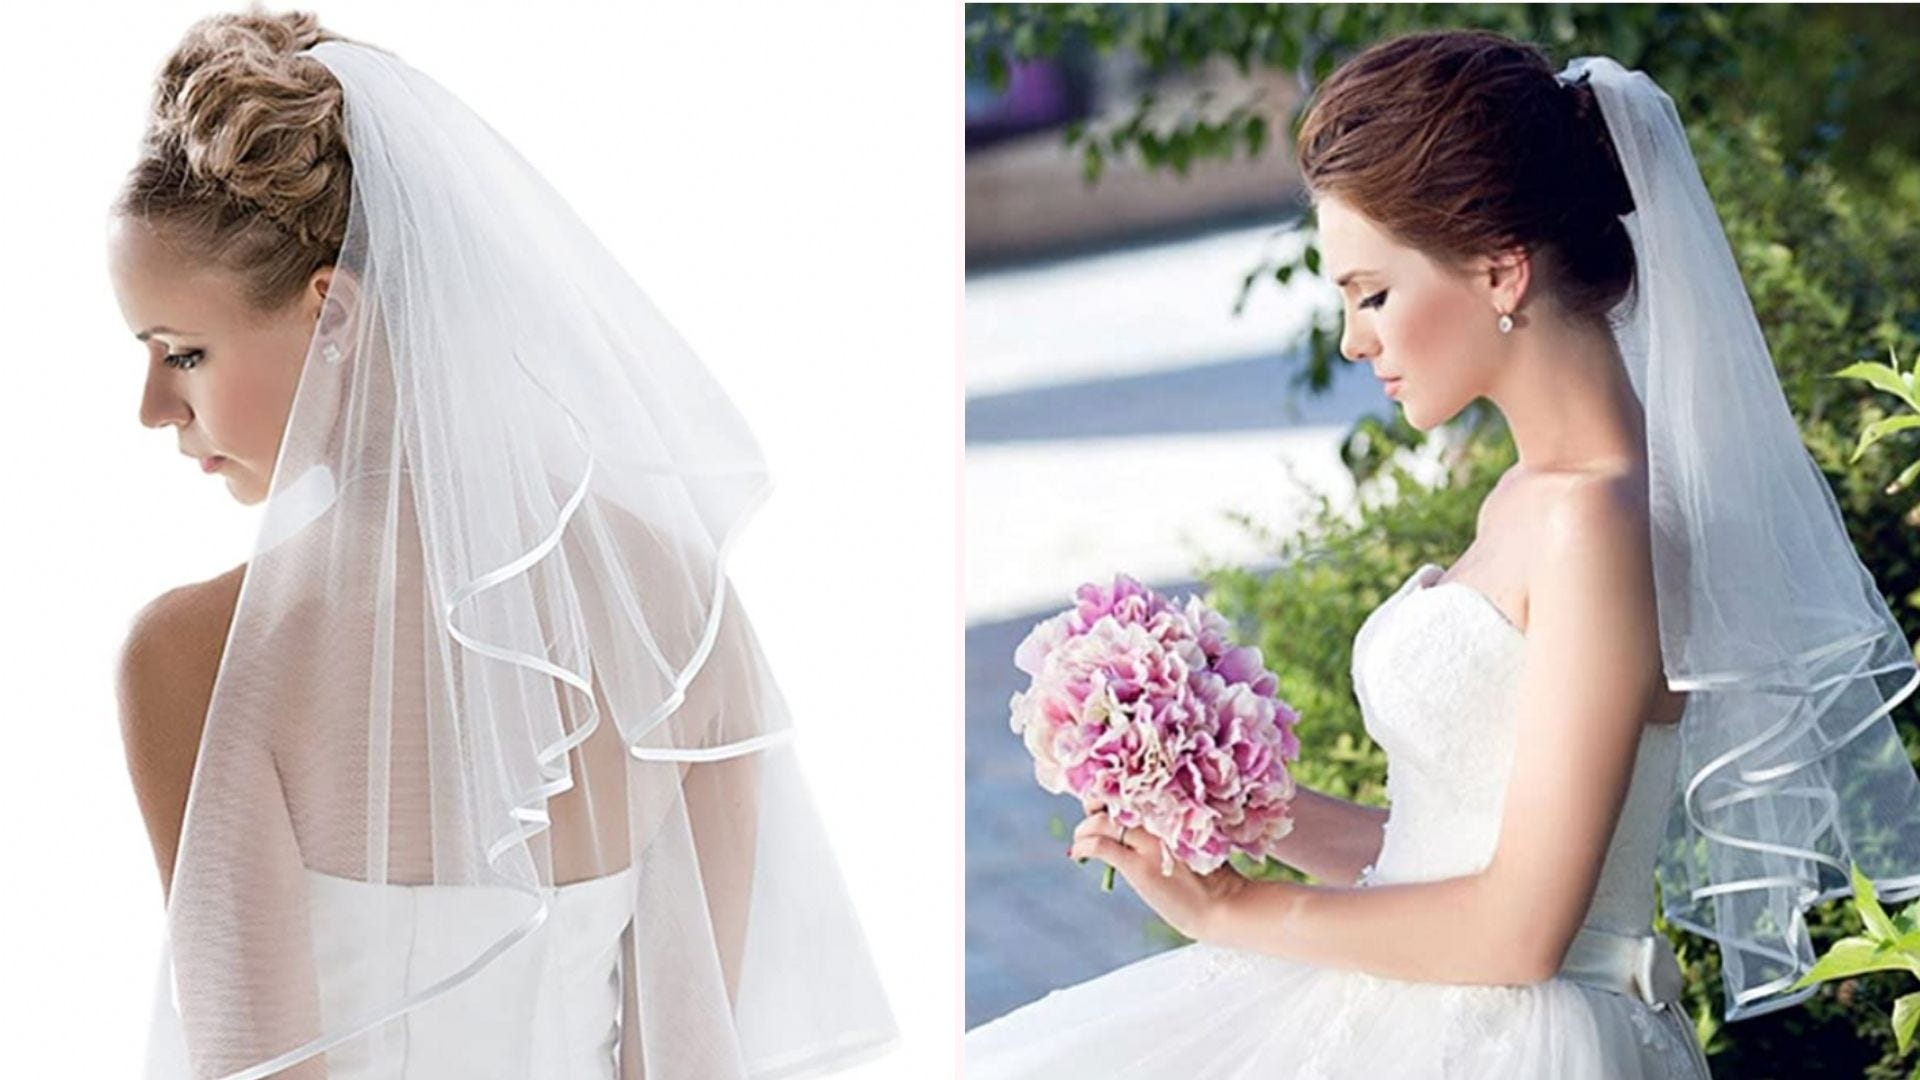 two brides wearing wedding gowns and a white veil with a satin edge that goes down to the waist